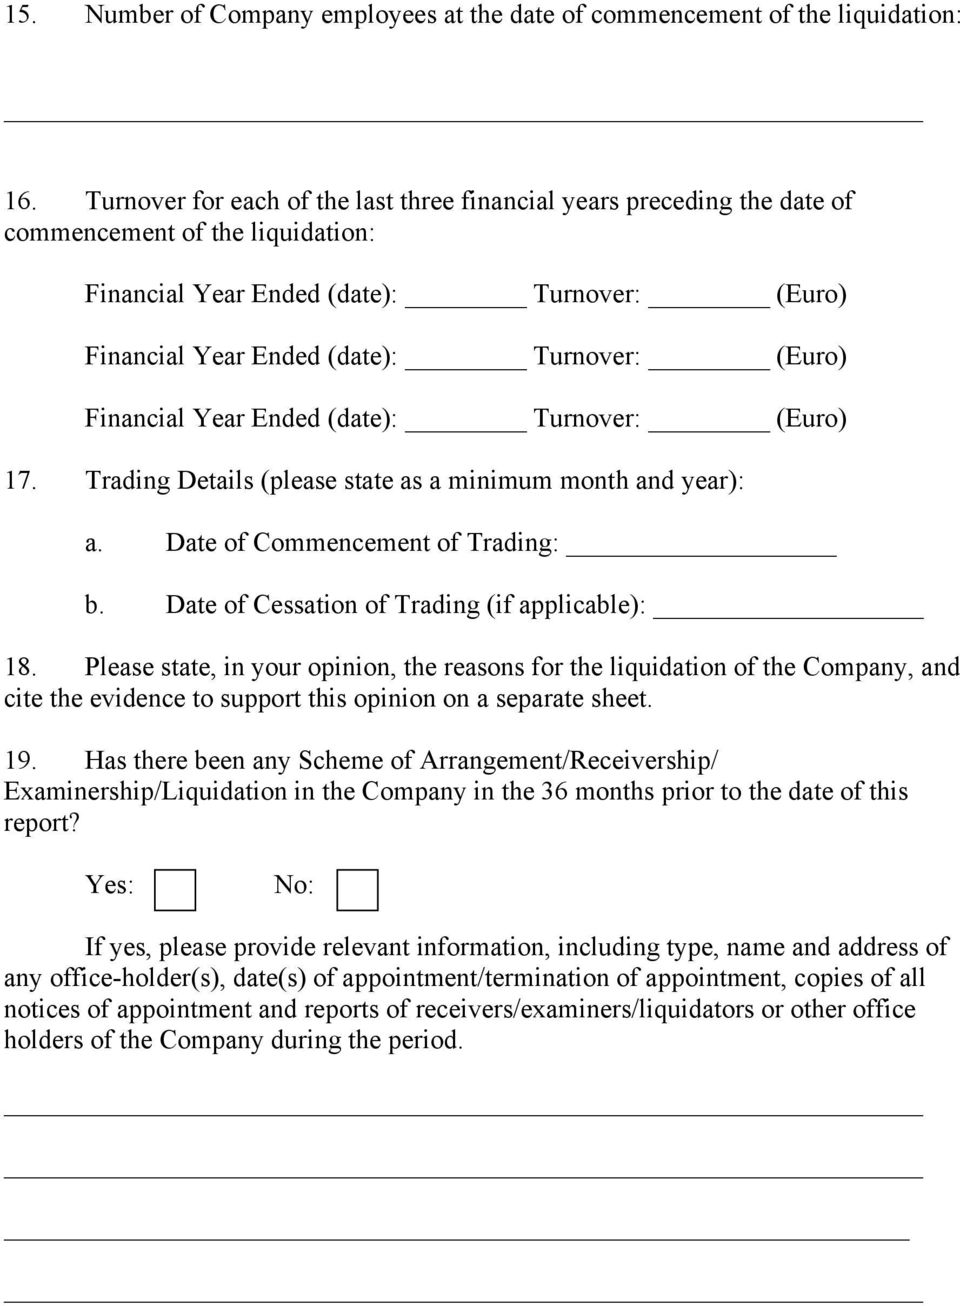 Financial Year Ended (date): Turnover: (Euro) 17. Trading Details (please state as a minimum month and year): a. Date of Commencement of Trading: b. Date of Cessation of Trading (if applicable): 18.